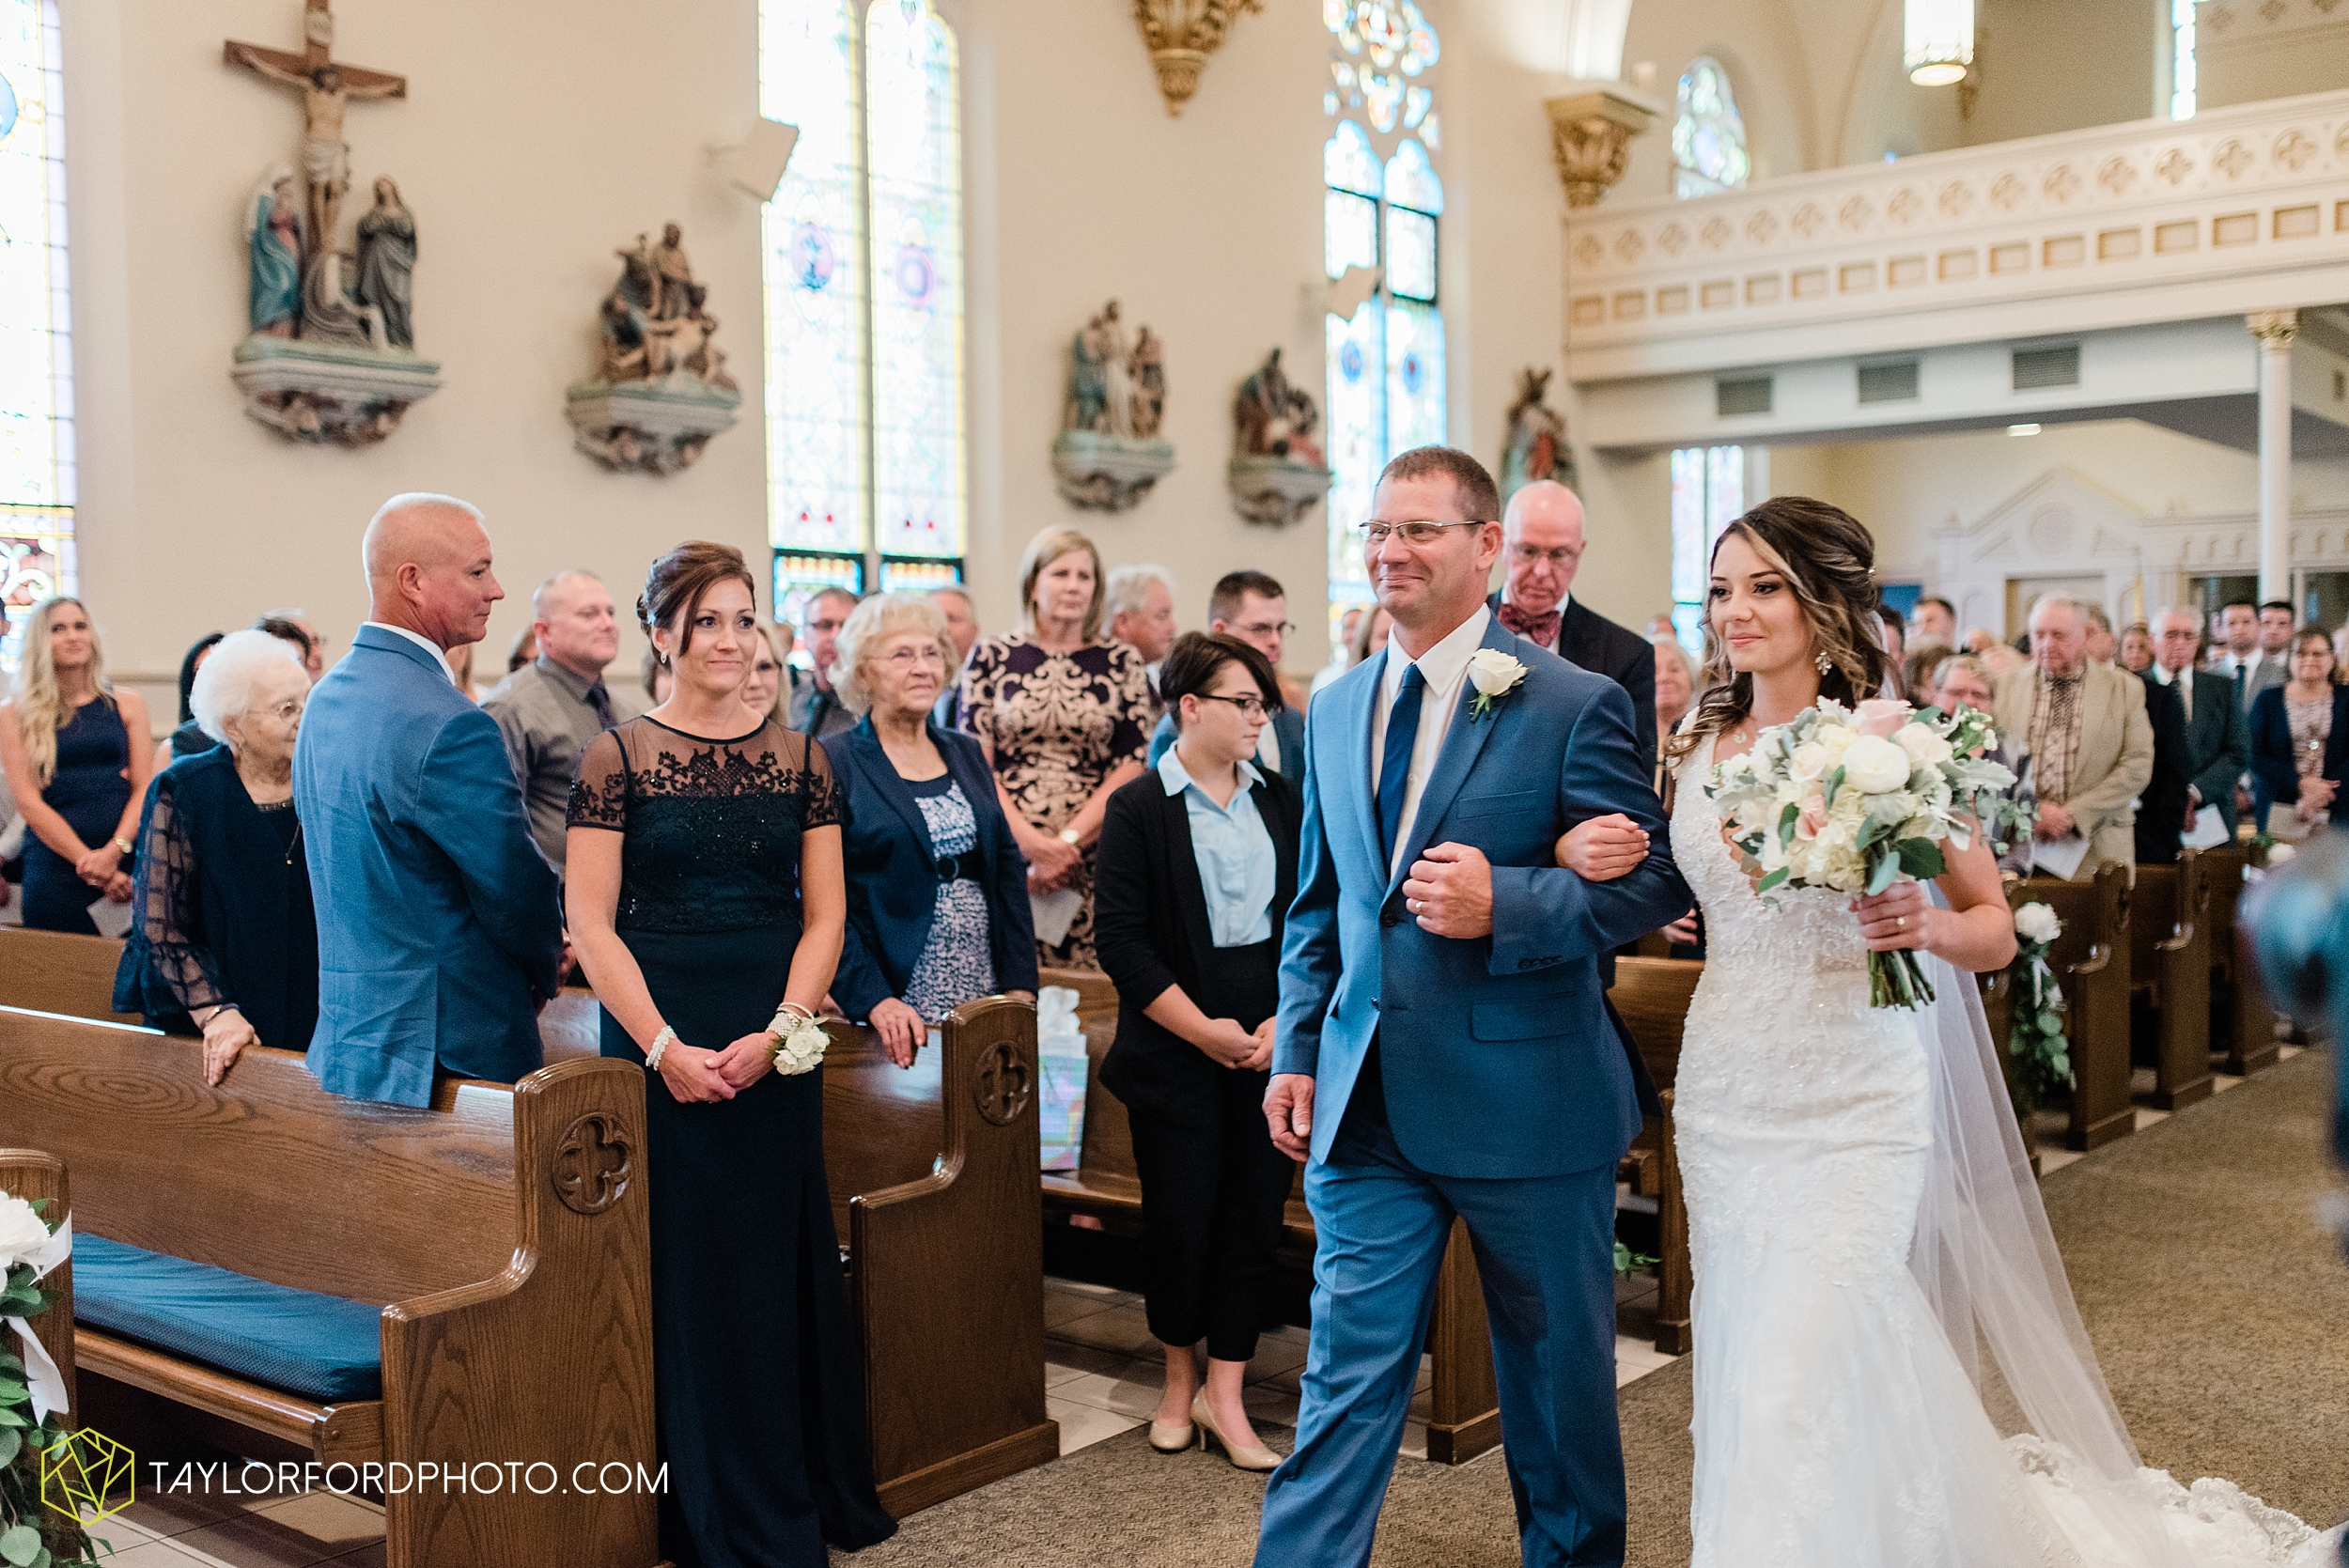 kacee-haden-sholl-second-story-saint-marys-knights-of-columbus-defiance-ohio-wedding-photographer-taylor-ford-photography_0151.jpg